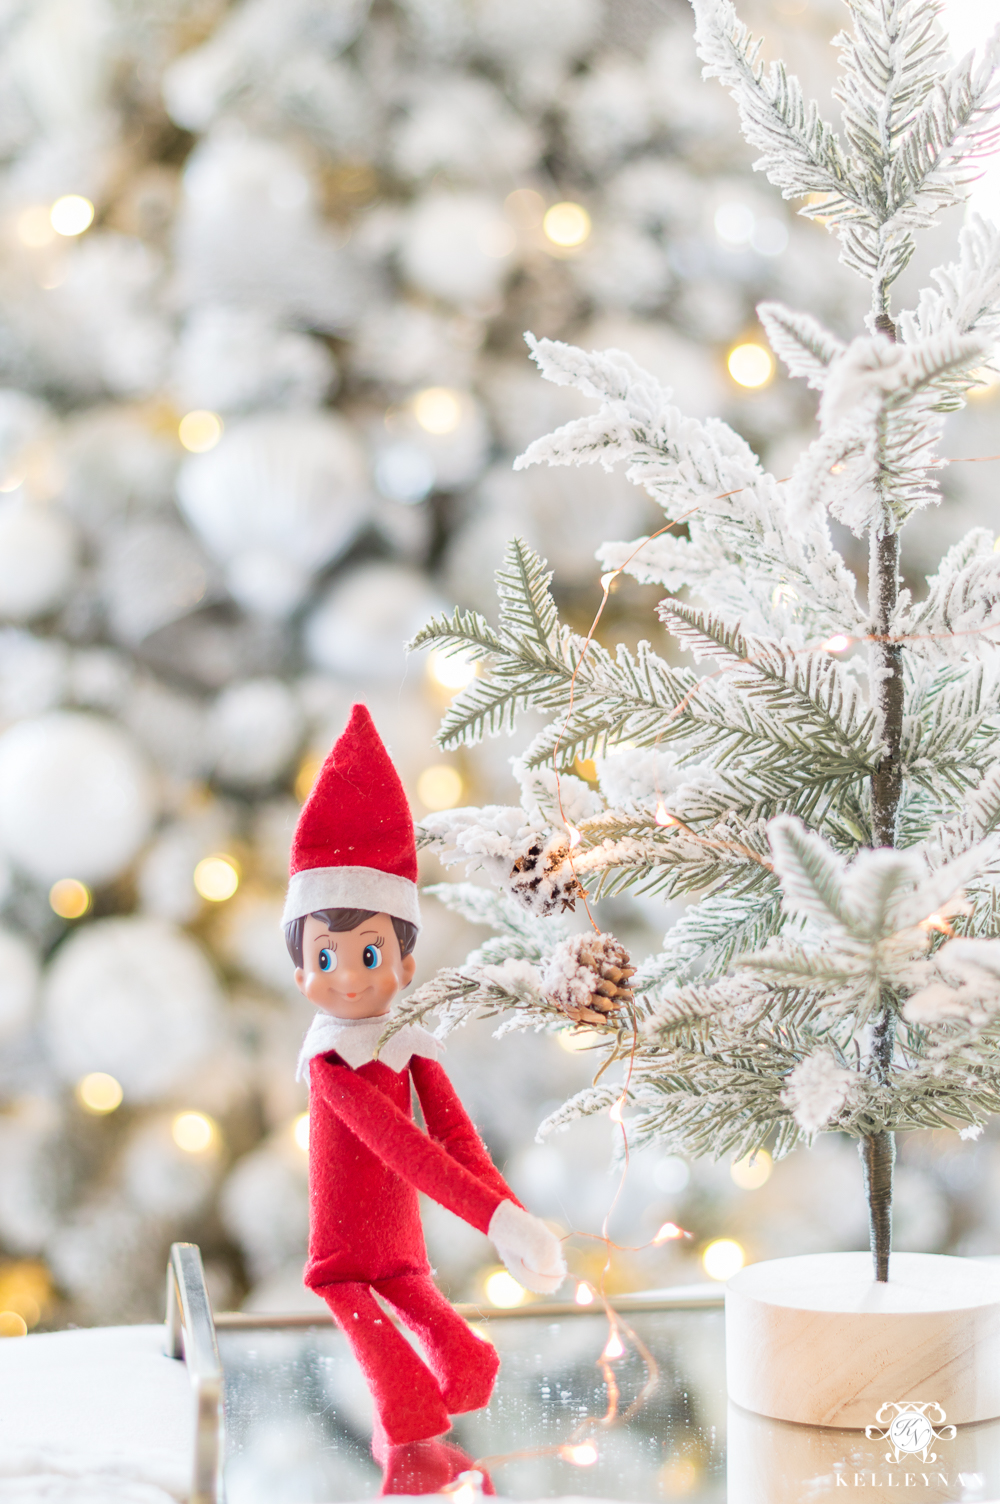 Elf on the shelf for grownups and couples